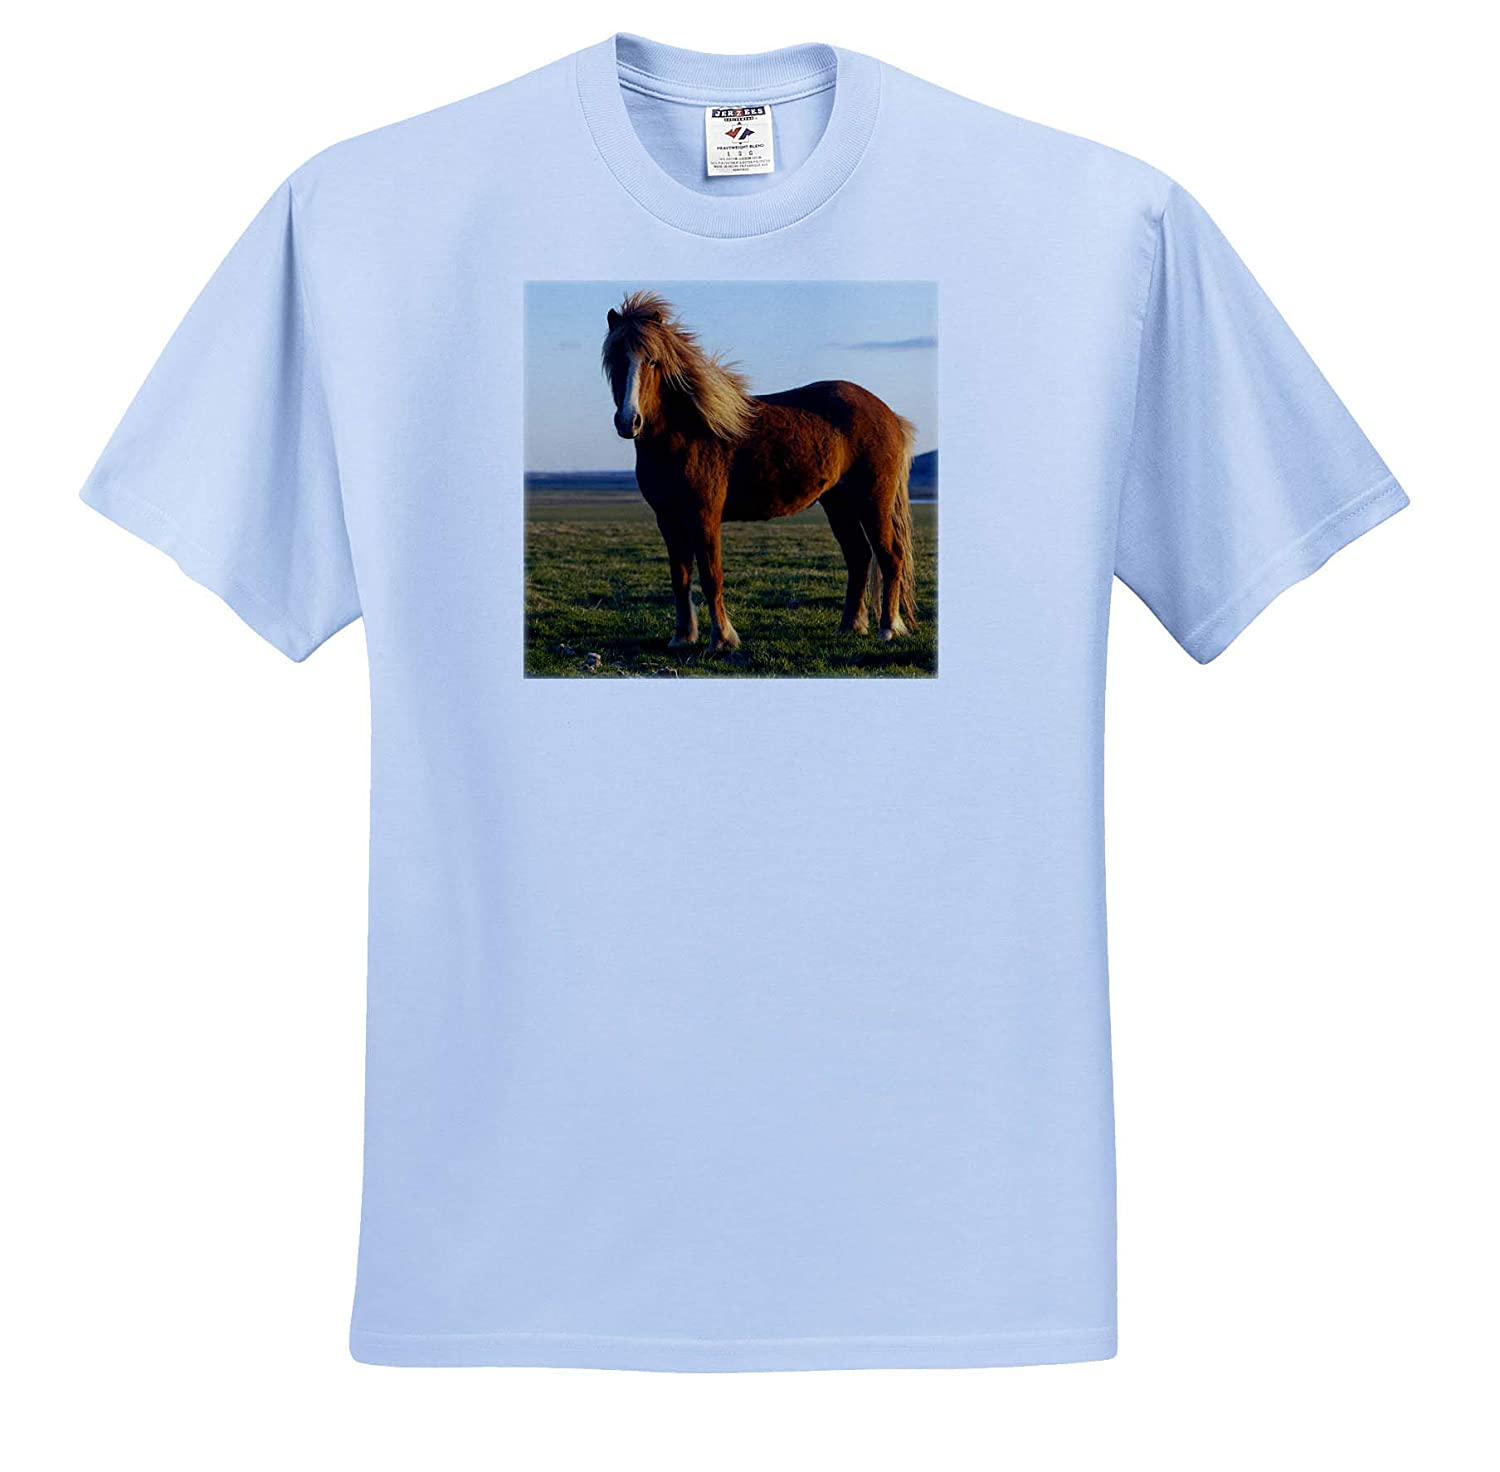 ts/_313631 Horses 3dRose Danita Delimont Icelandic Horse in Sunset Light - Adult T-Shirt XL Iceland